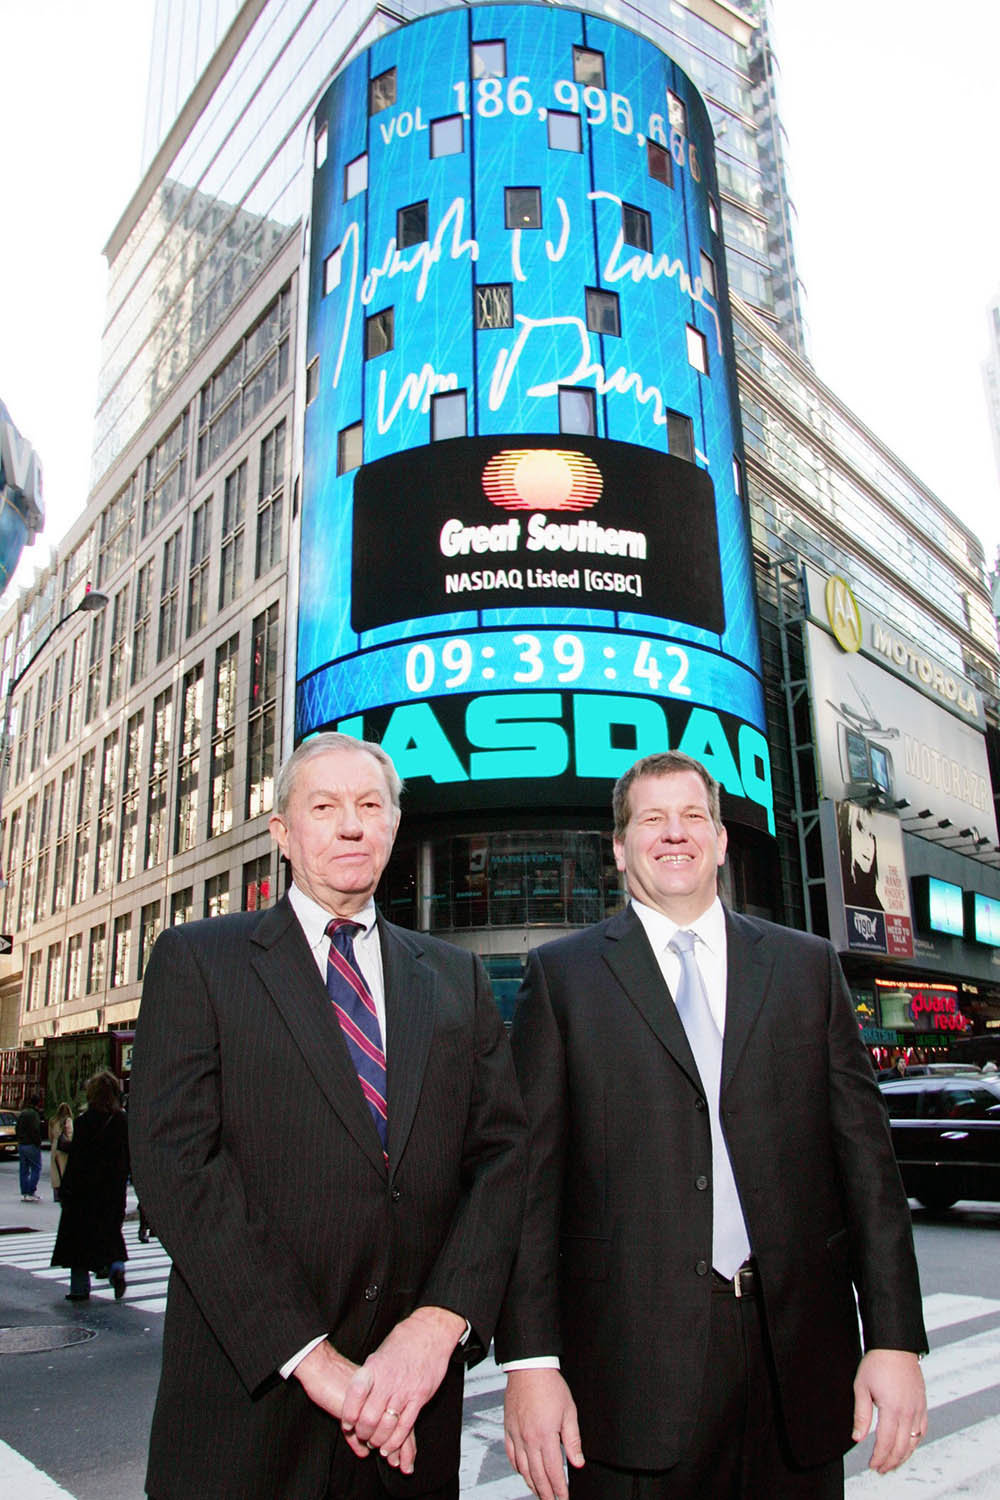 Bill Turner, left, and son Joe are in Times Square on Dec. 3, 2004, for Great Southern Bank's opening of the Nasdaq stock market.